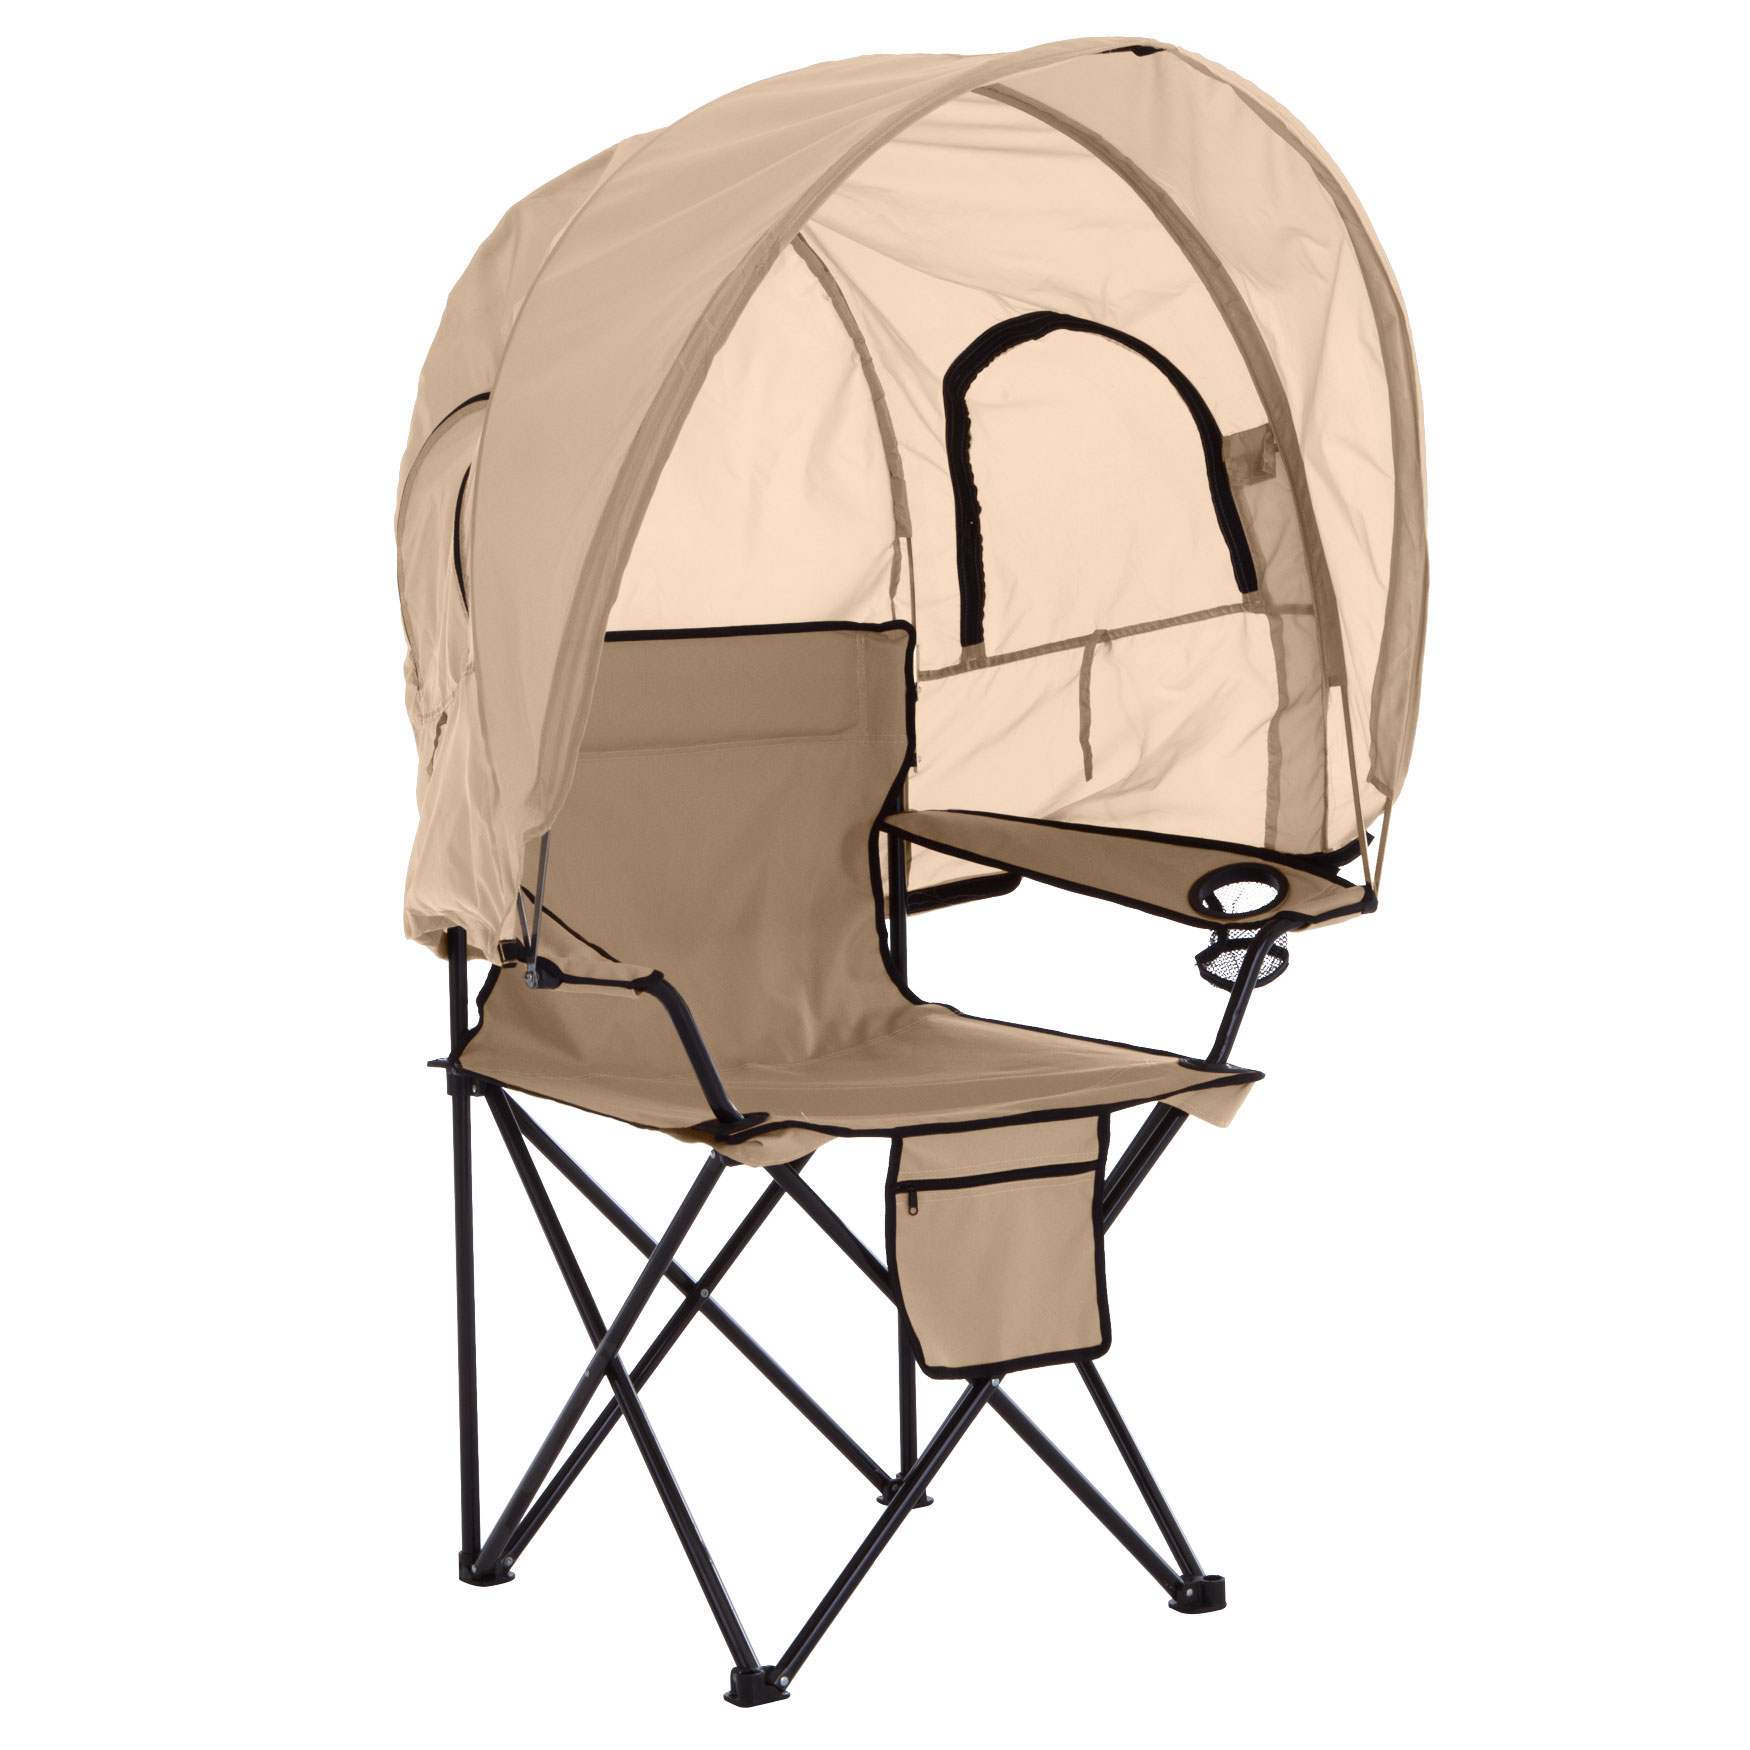 Camping Chairs With Canopy Camp Chair With Canopy Brylane Home